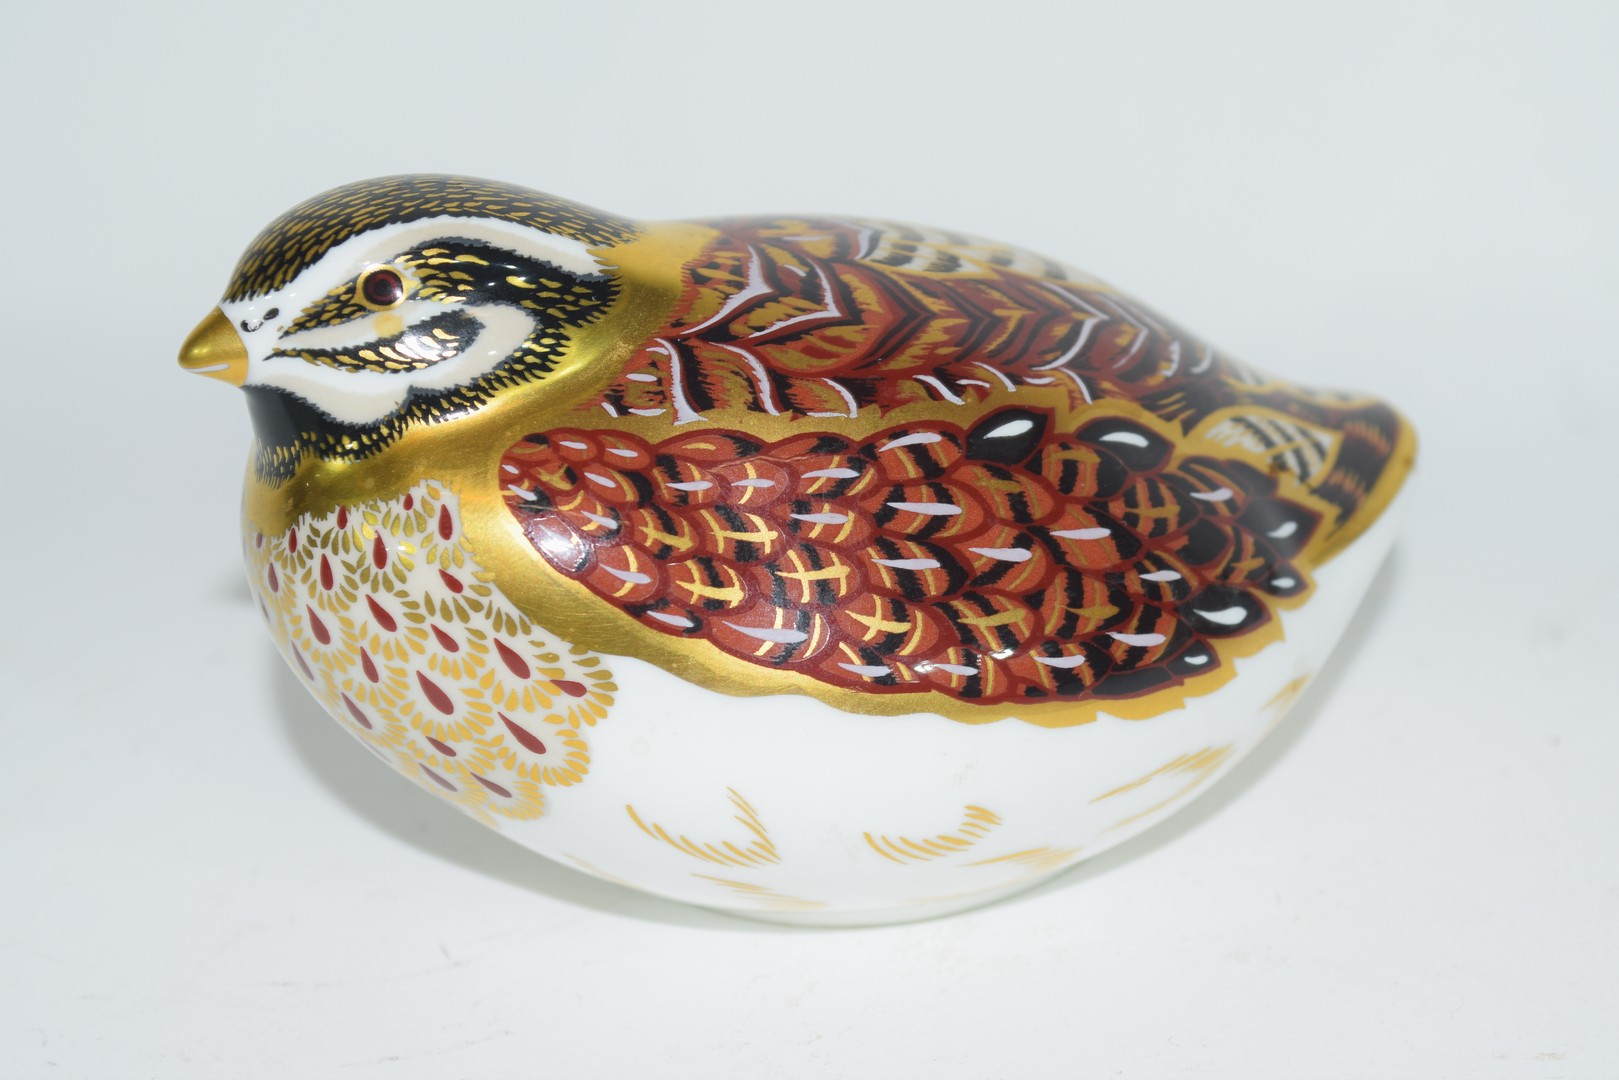 Group of Royal Crown Derby paperweights - Image 8 of 8